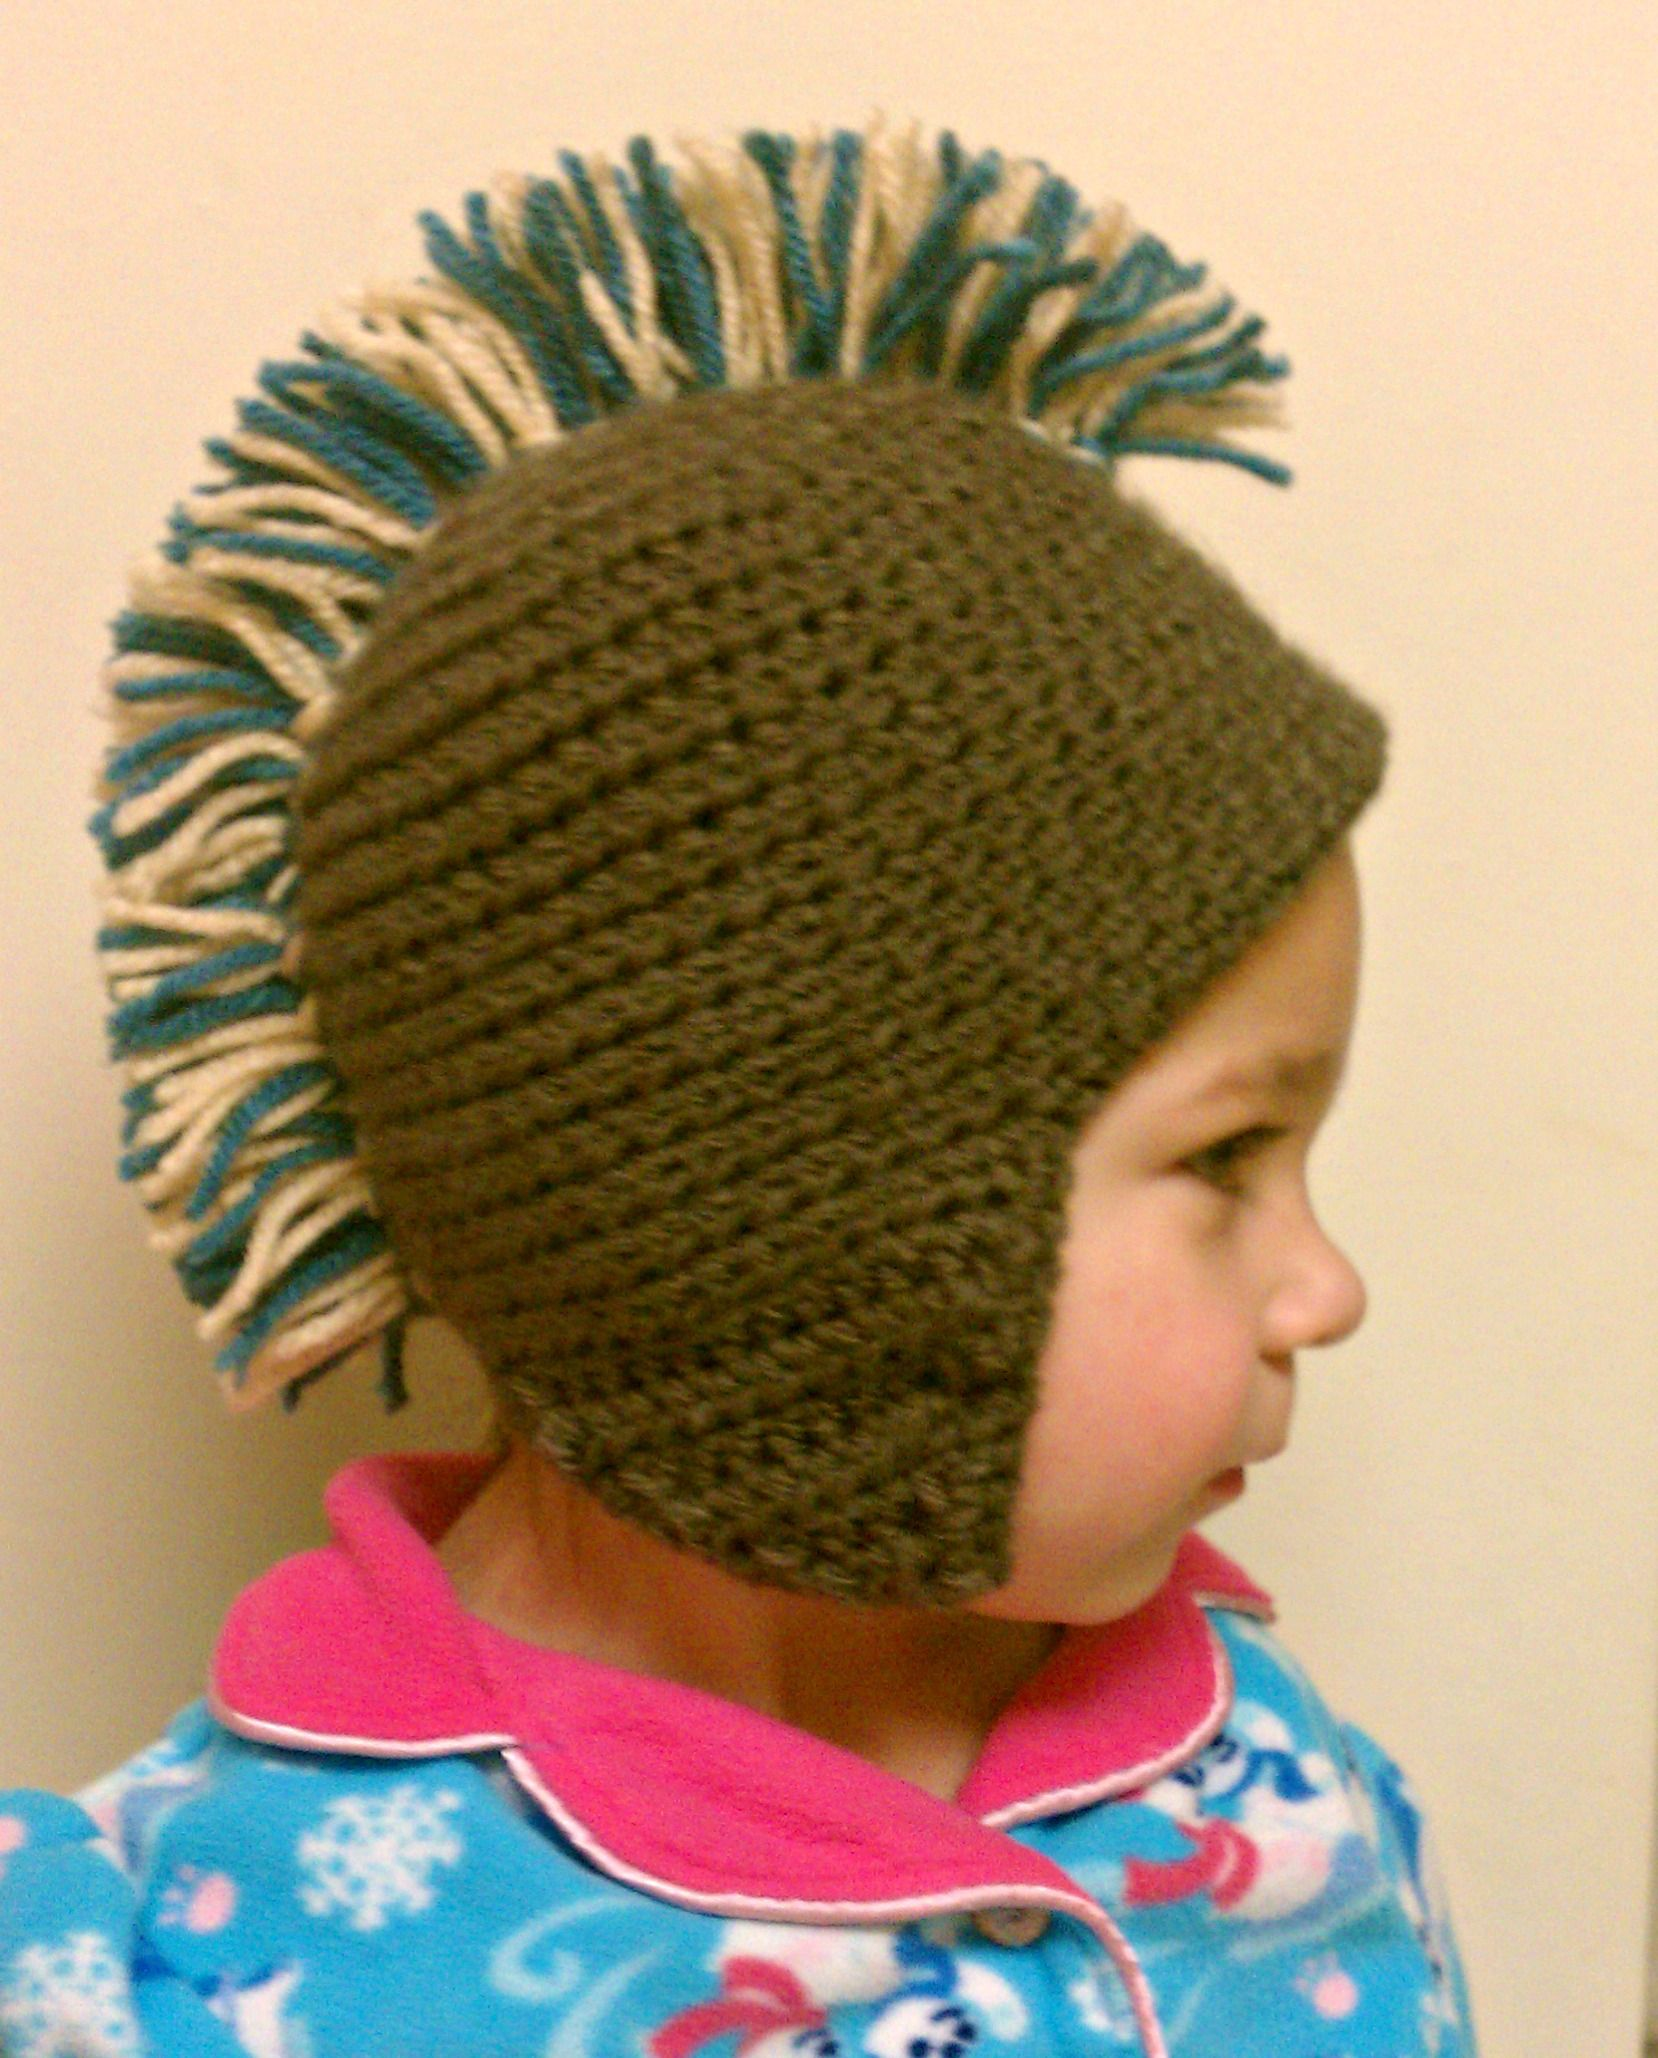 Mohawk hat pattern on my